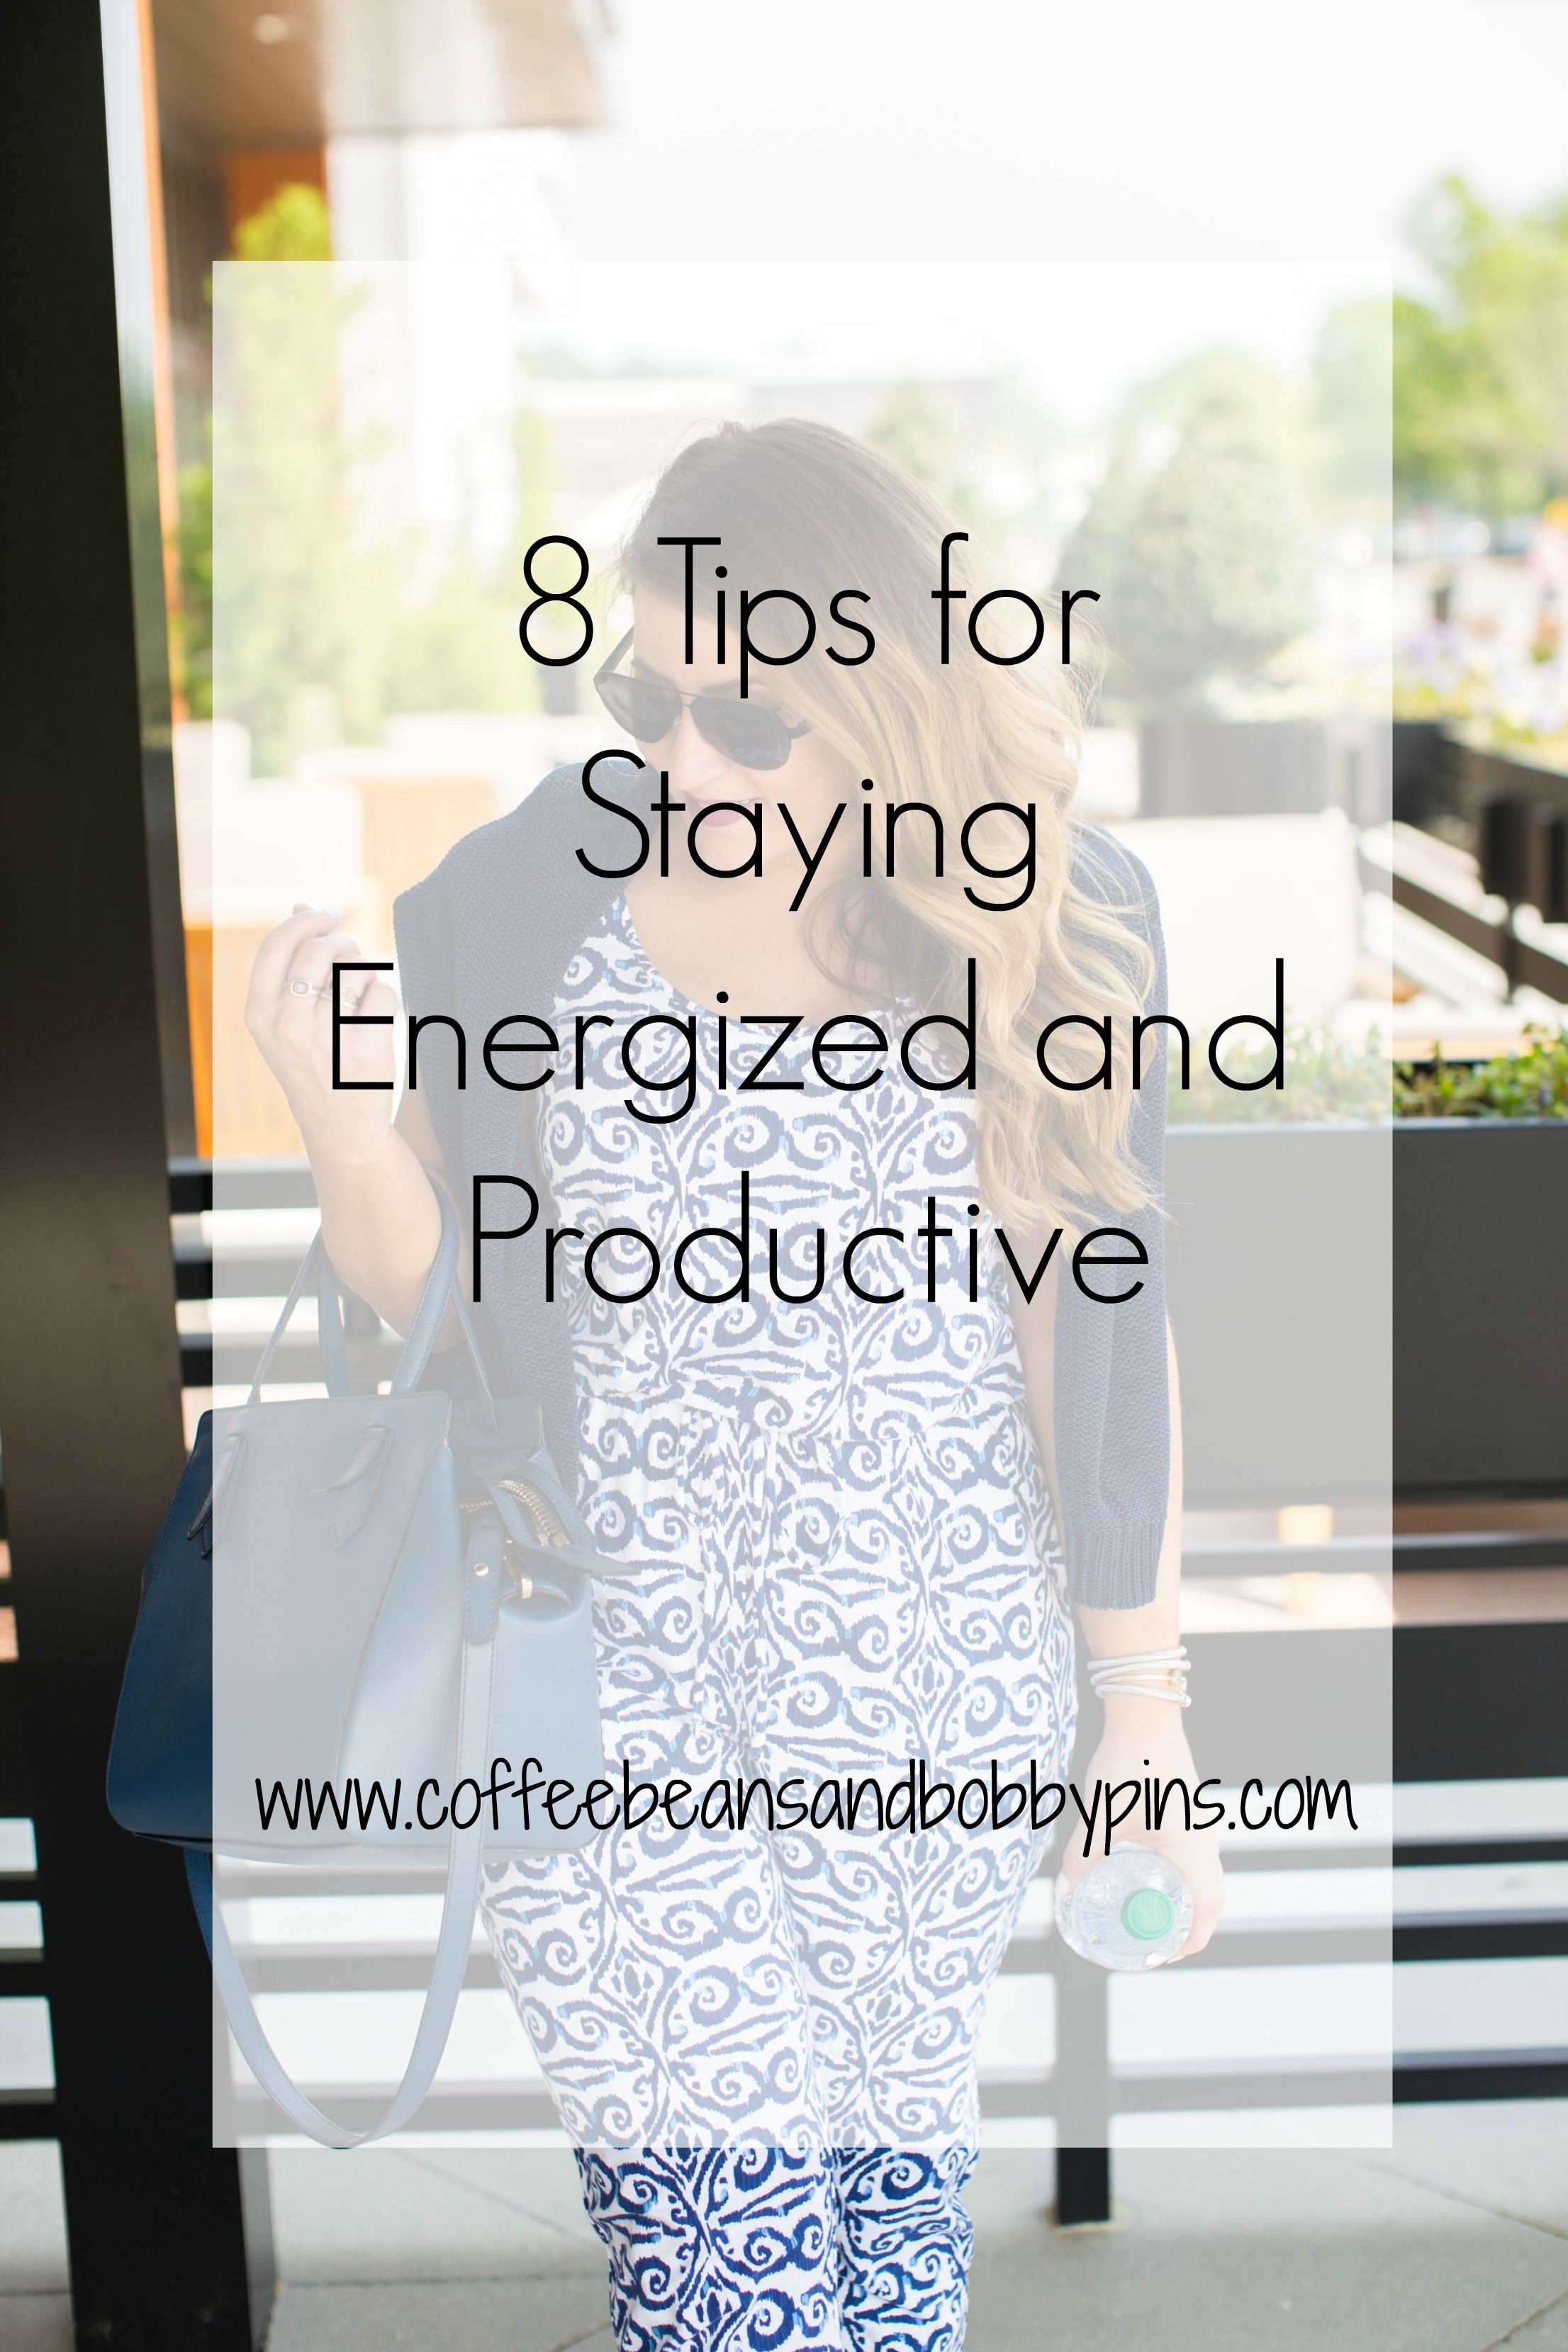 8 Tips on How To Stay Energized & Productive by NC blogger Amy of Coffee Beans and Bobby Pins